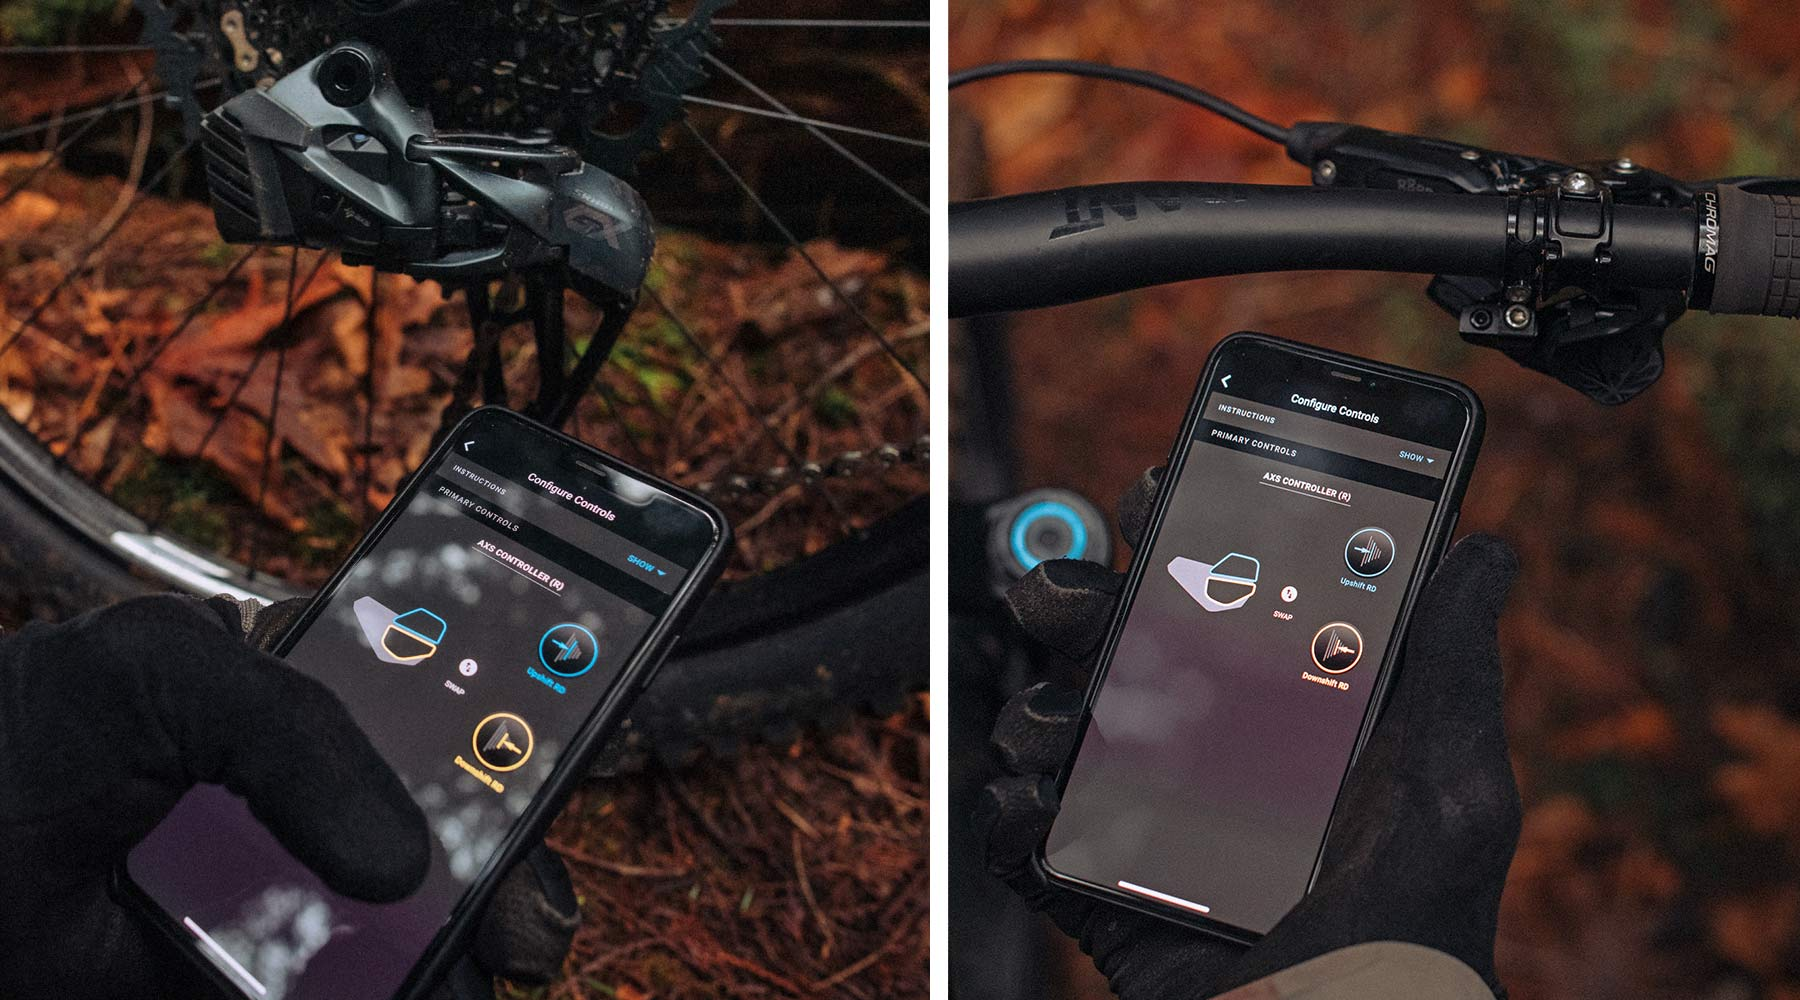 SRAM GX Eagle AXS group, low-cost 1x12-speed wireless electronic app setup & control